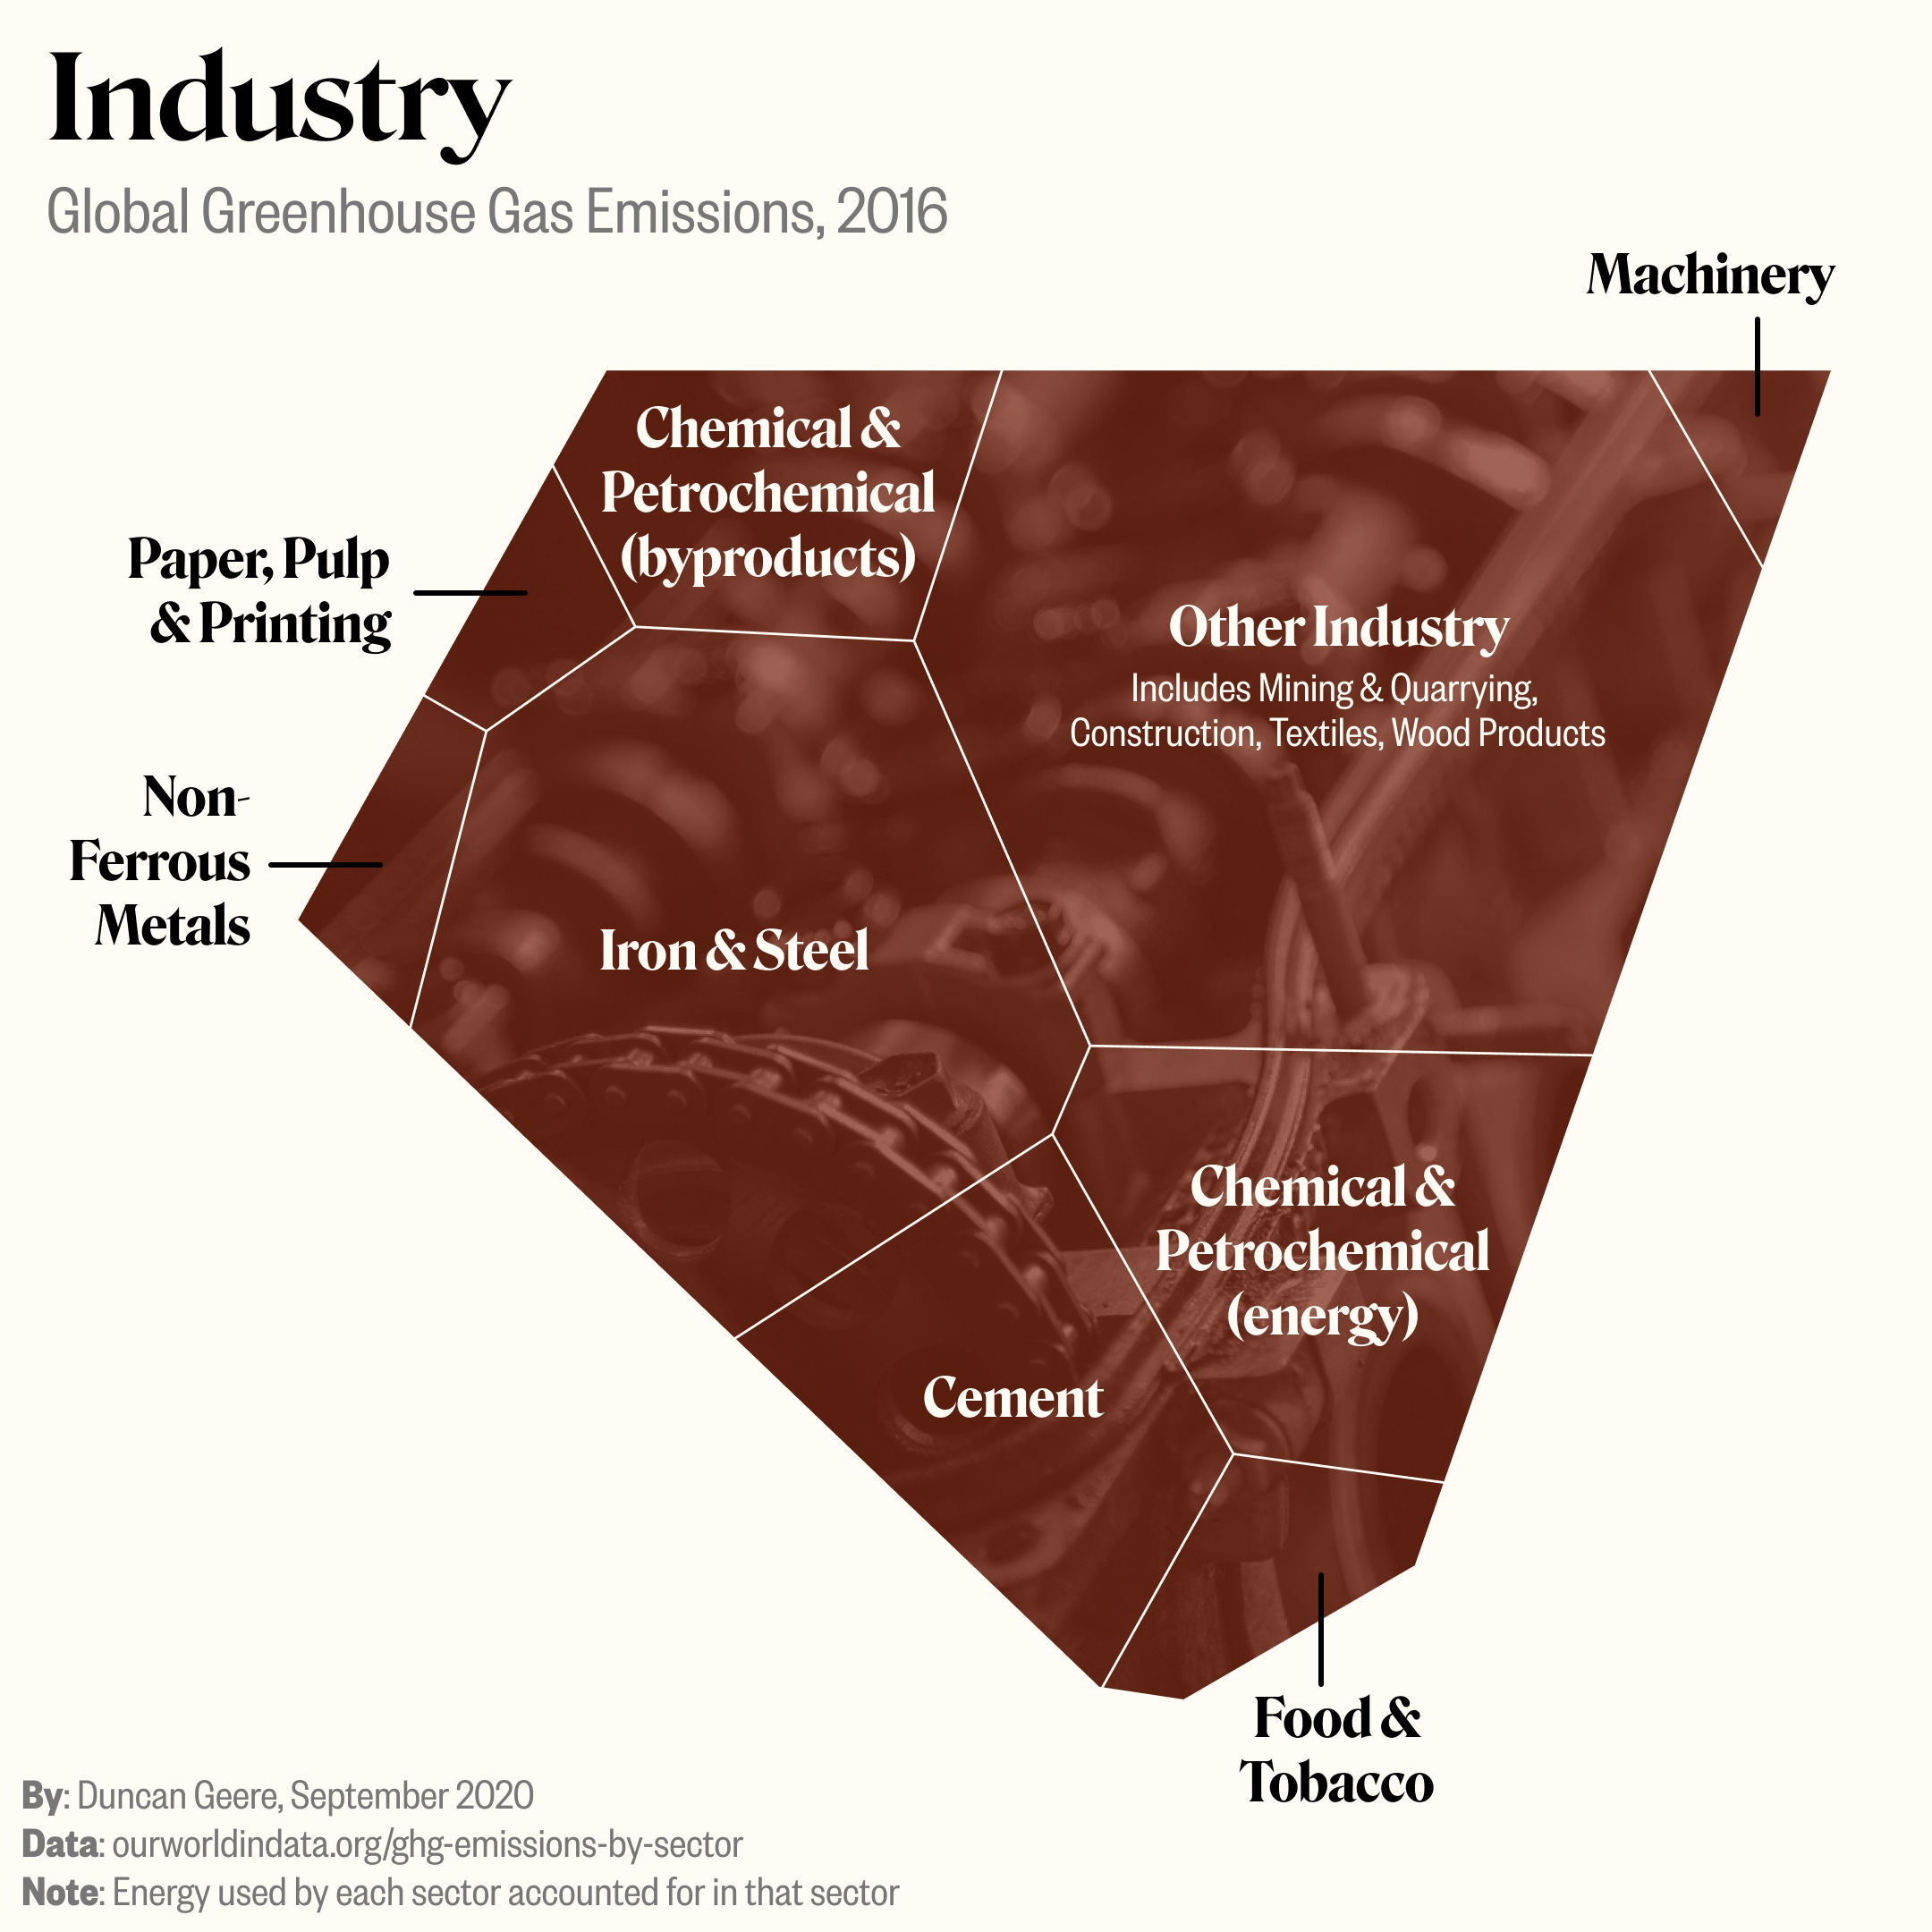 industry emissions, 2016